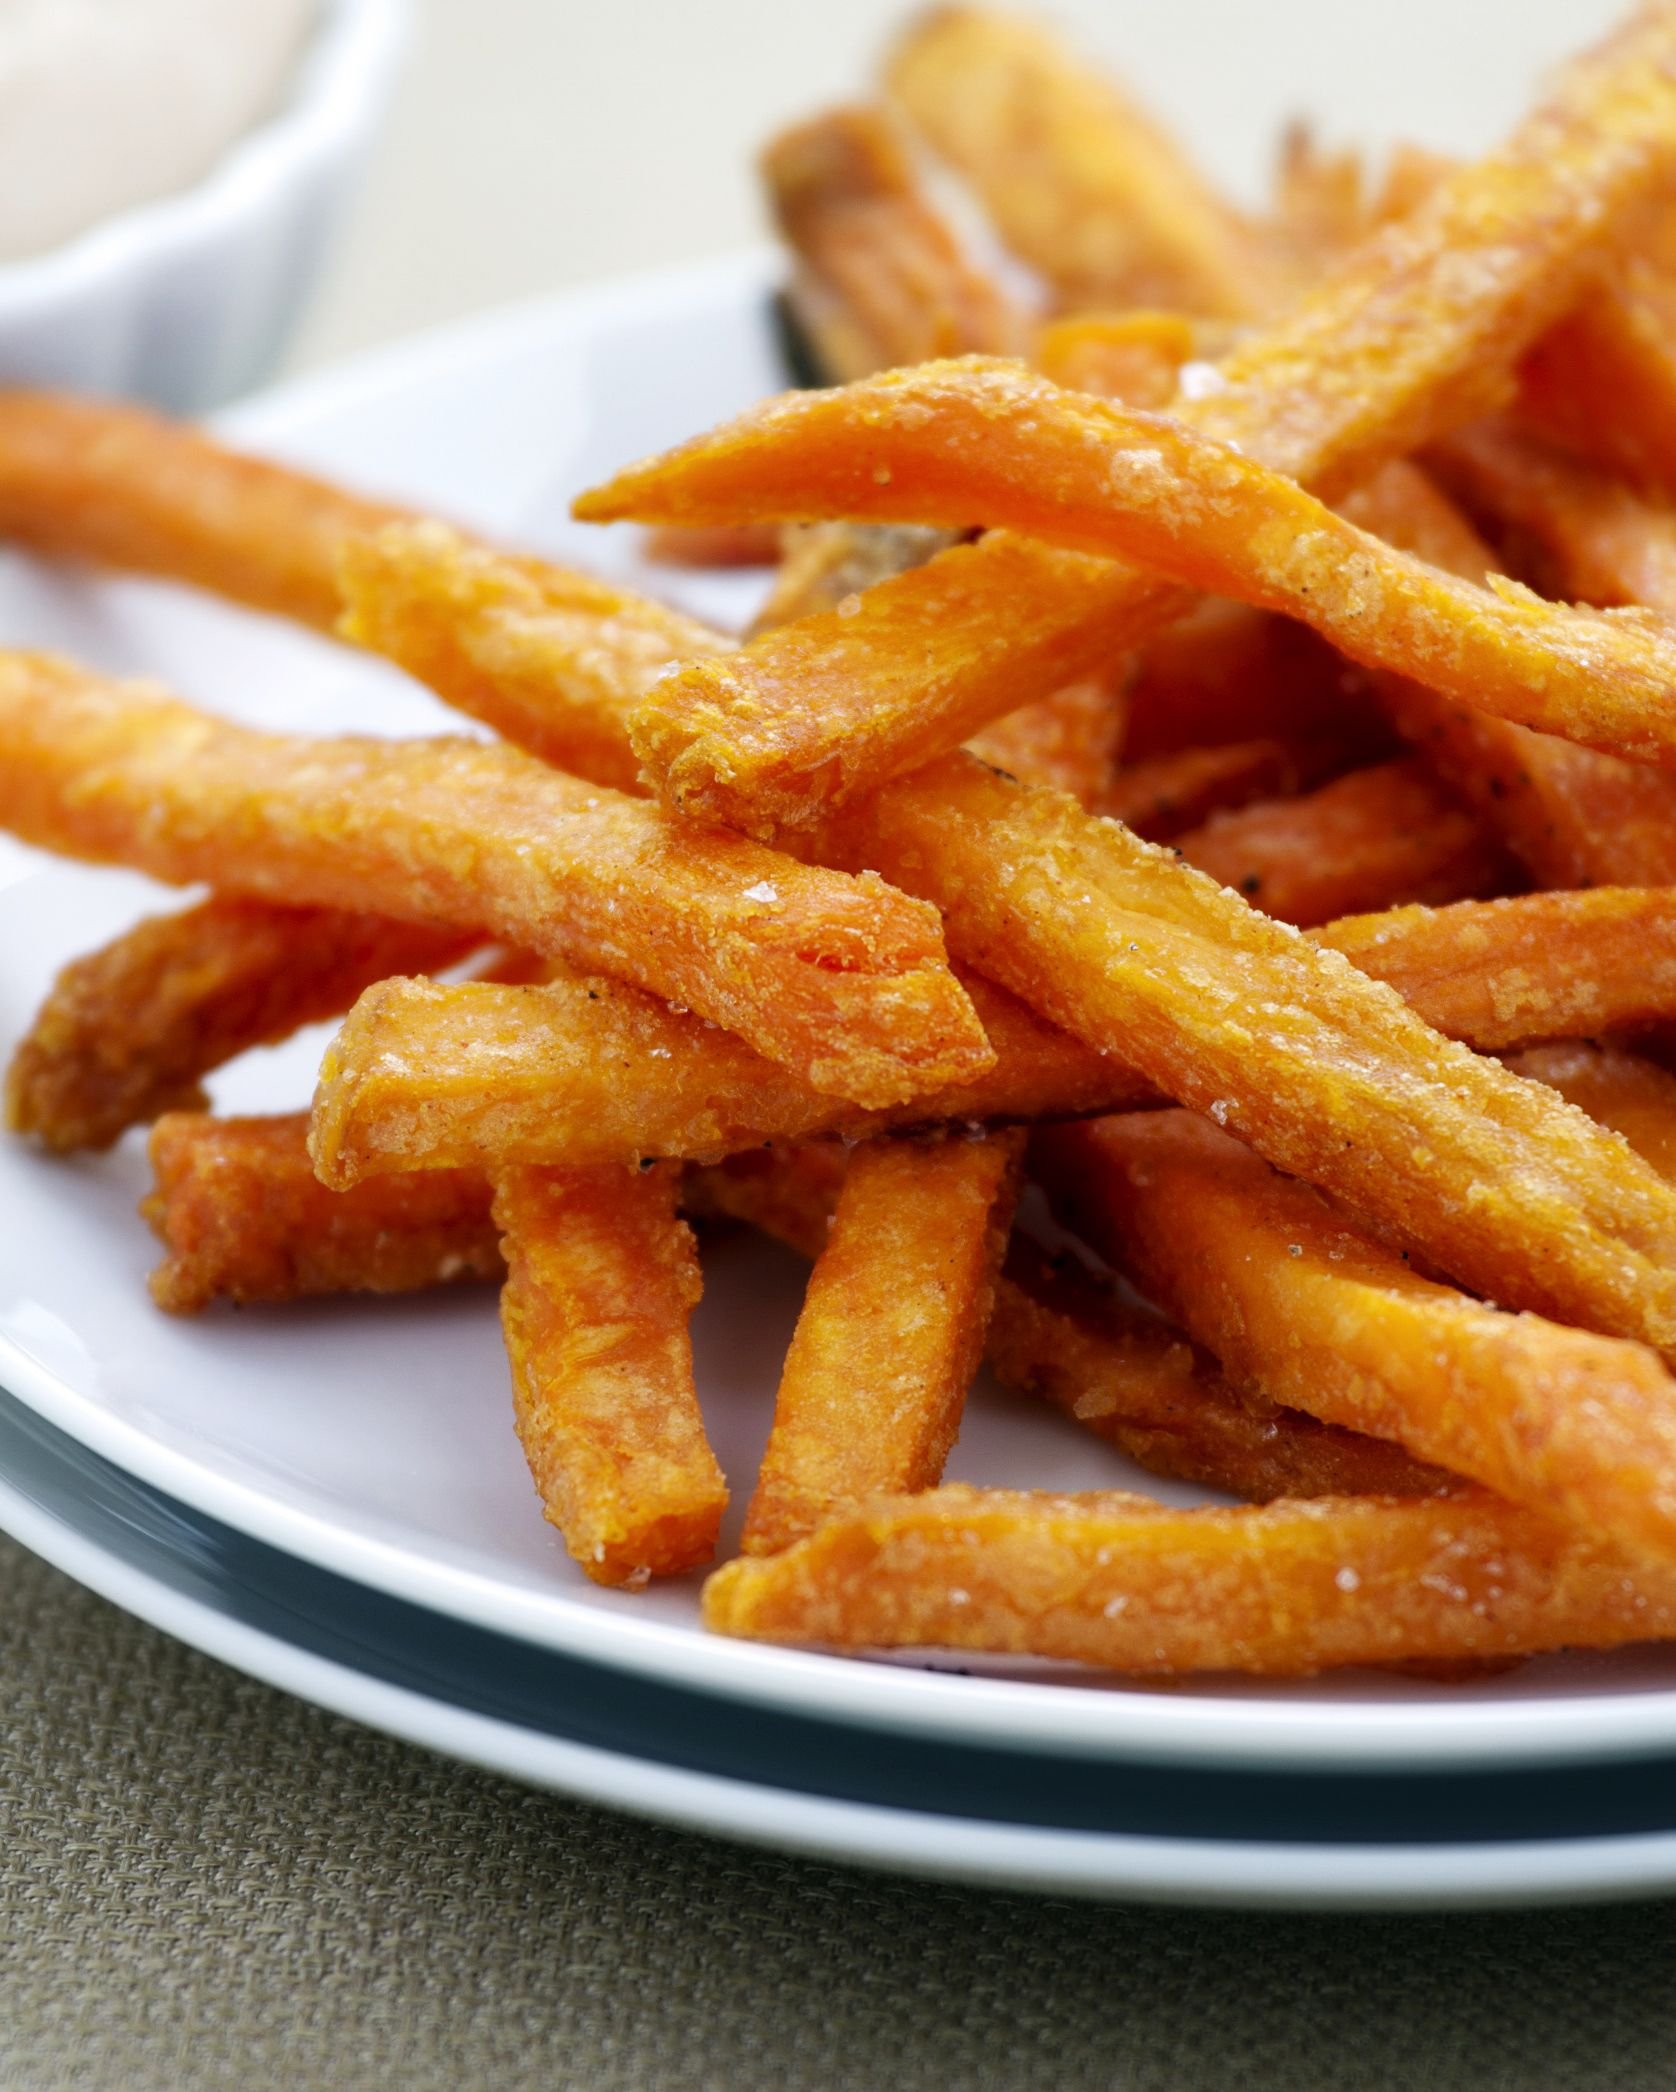 Low-Fat Healthy Baked Sweet Potato Fries Recipe (Vegan